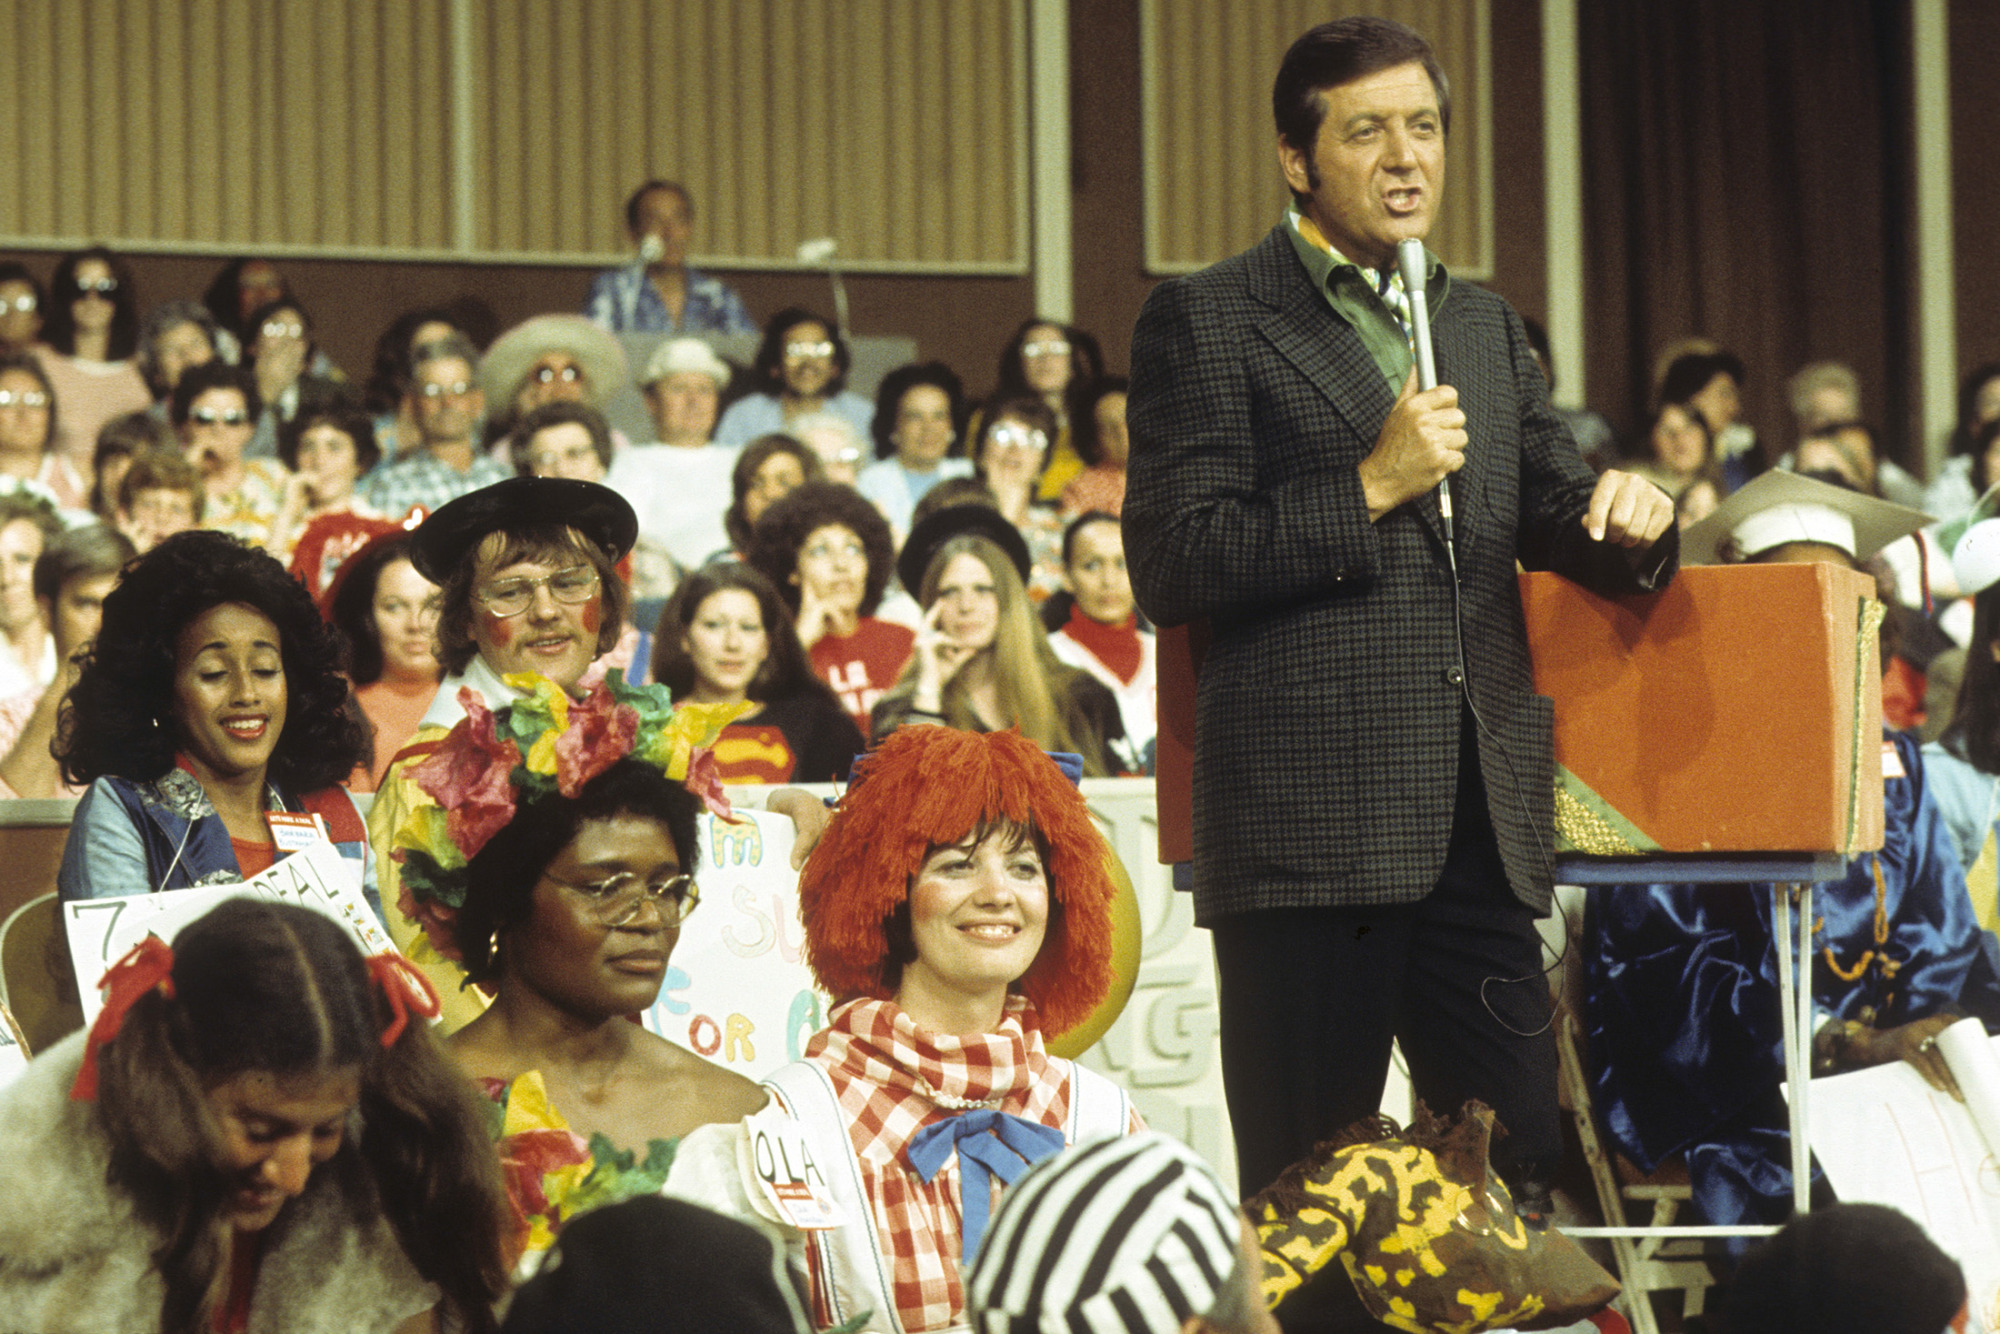 Monty Hall, Host of Game Show 'Let's Make a Deal,' Dies at 96